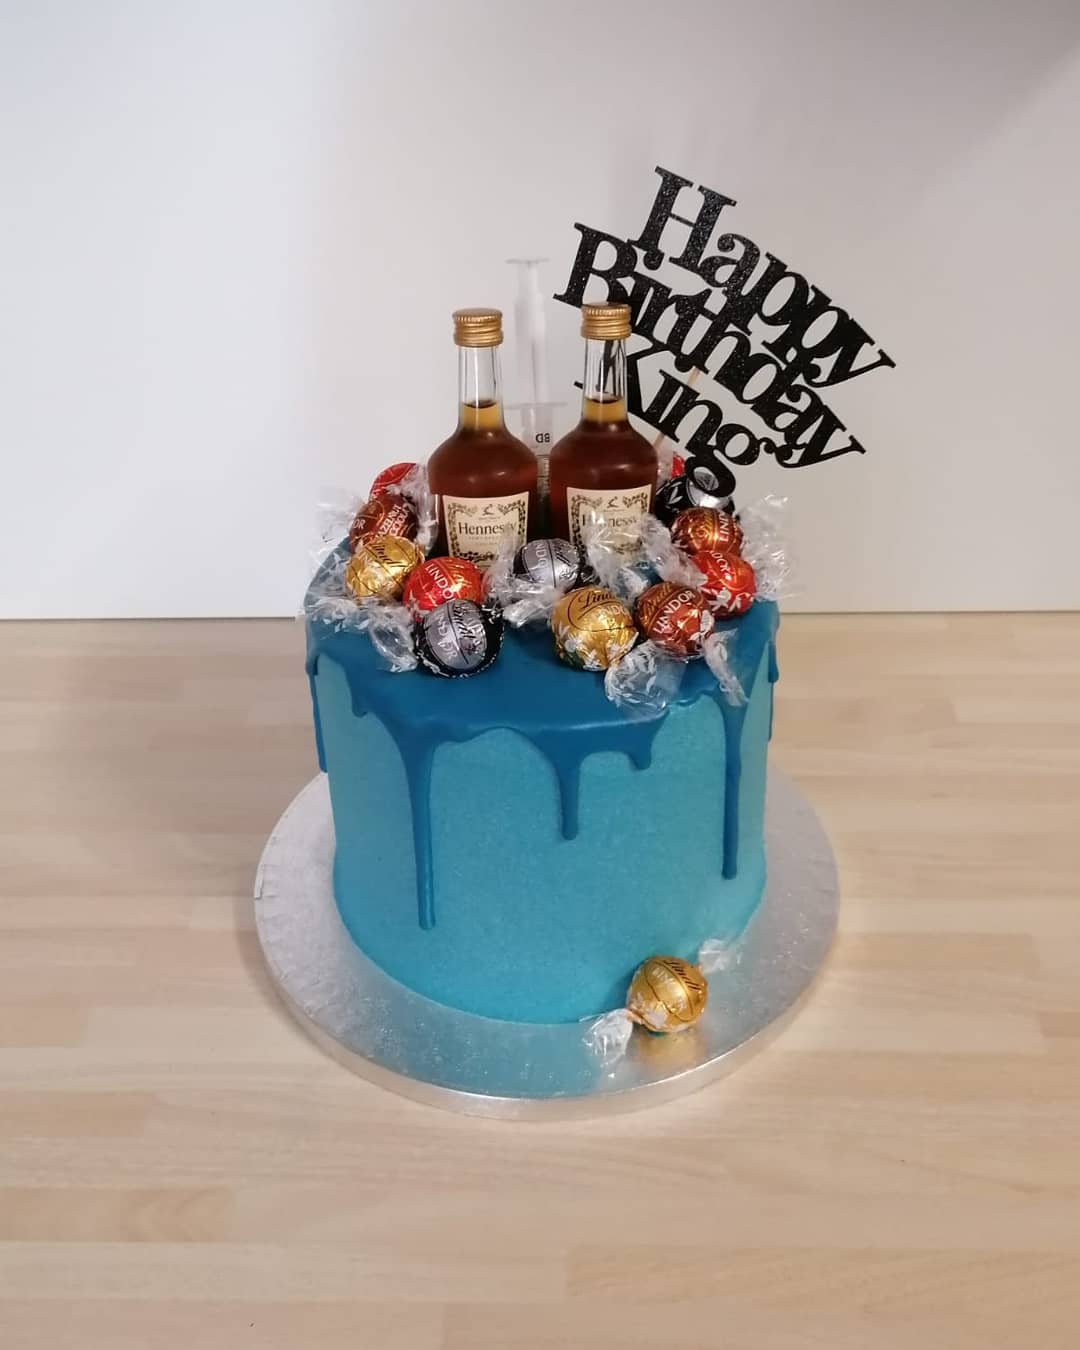 Henessey Bottle Drip Cake